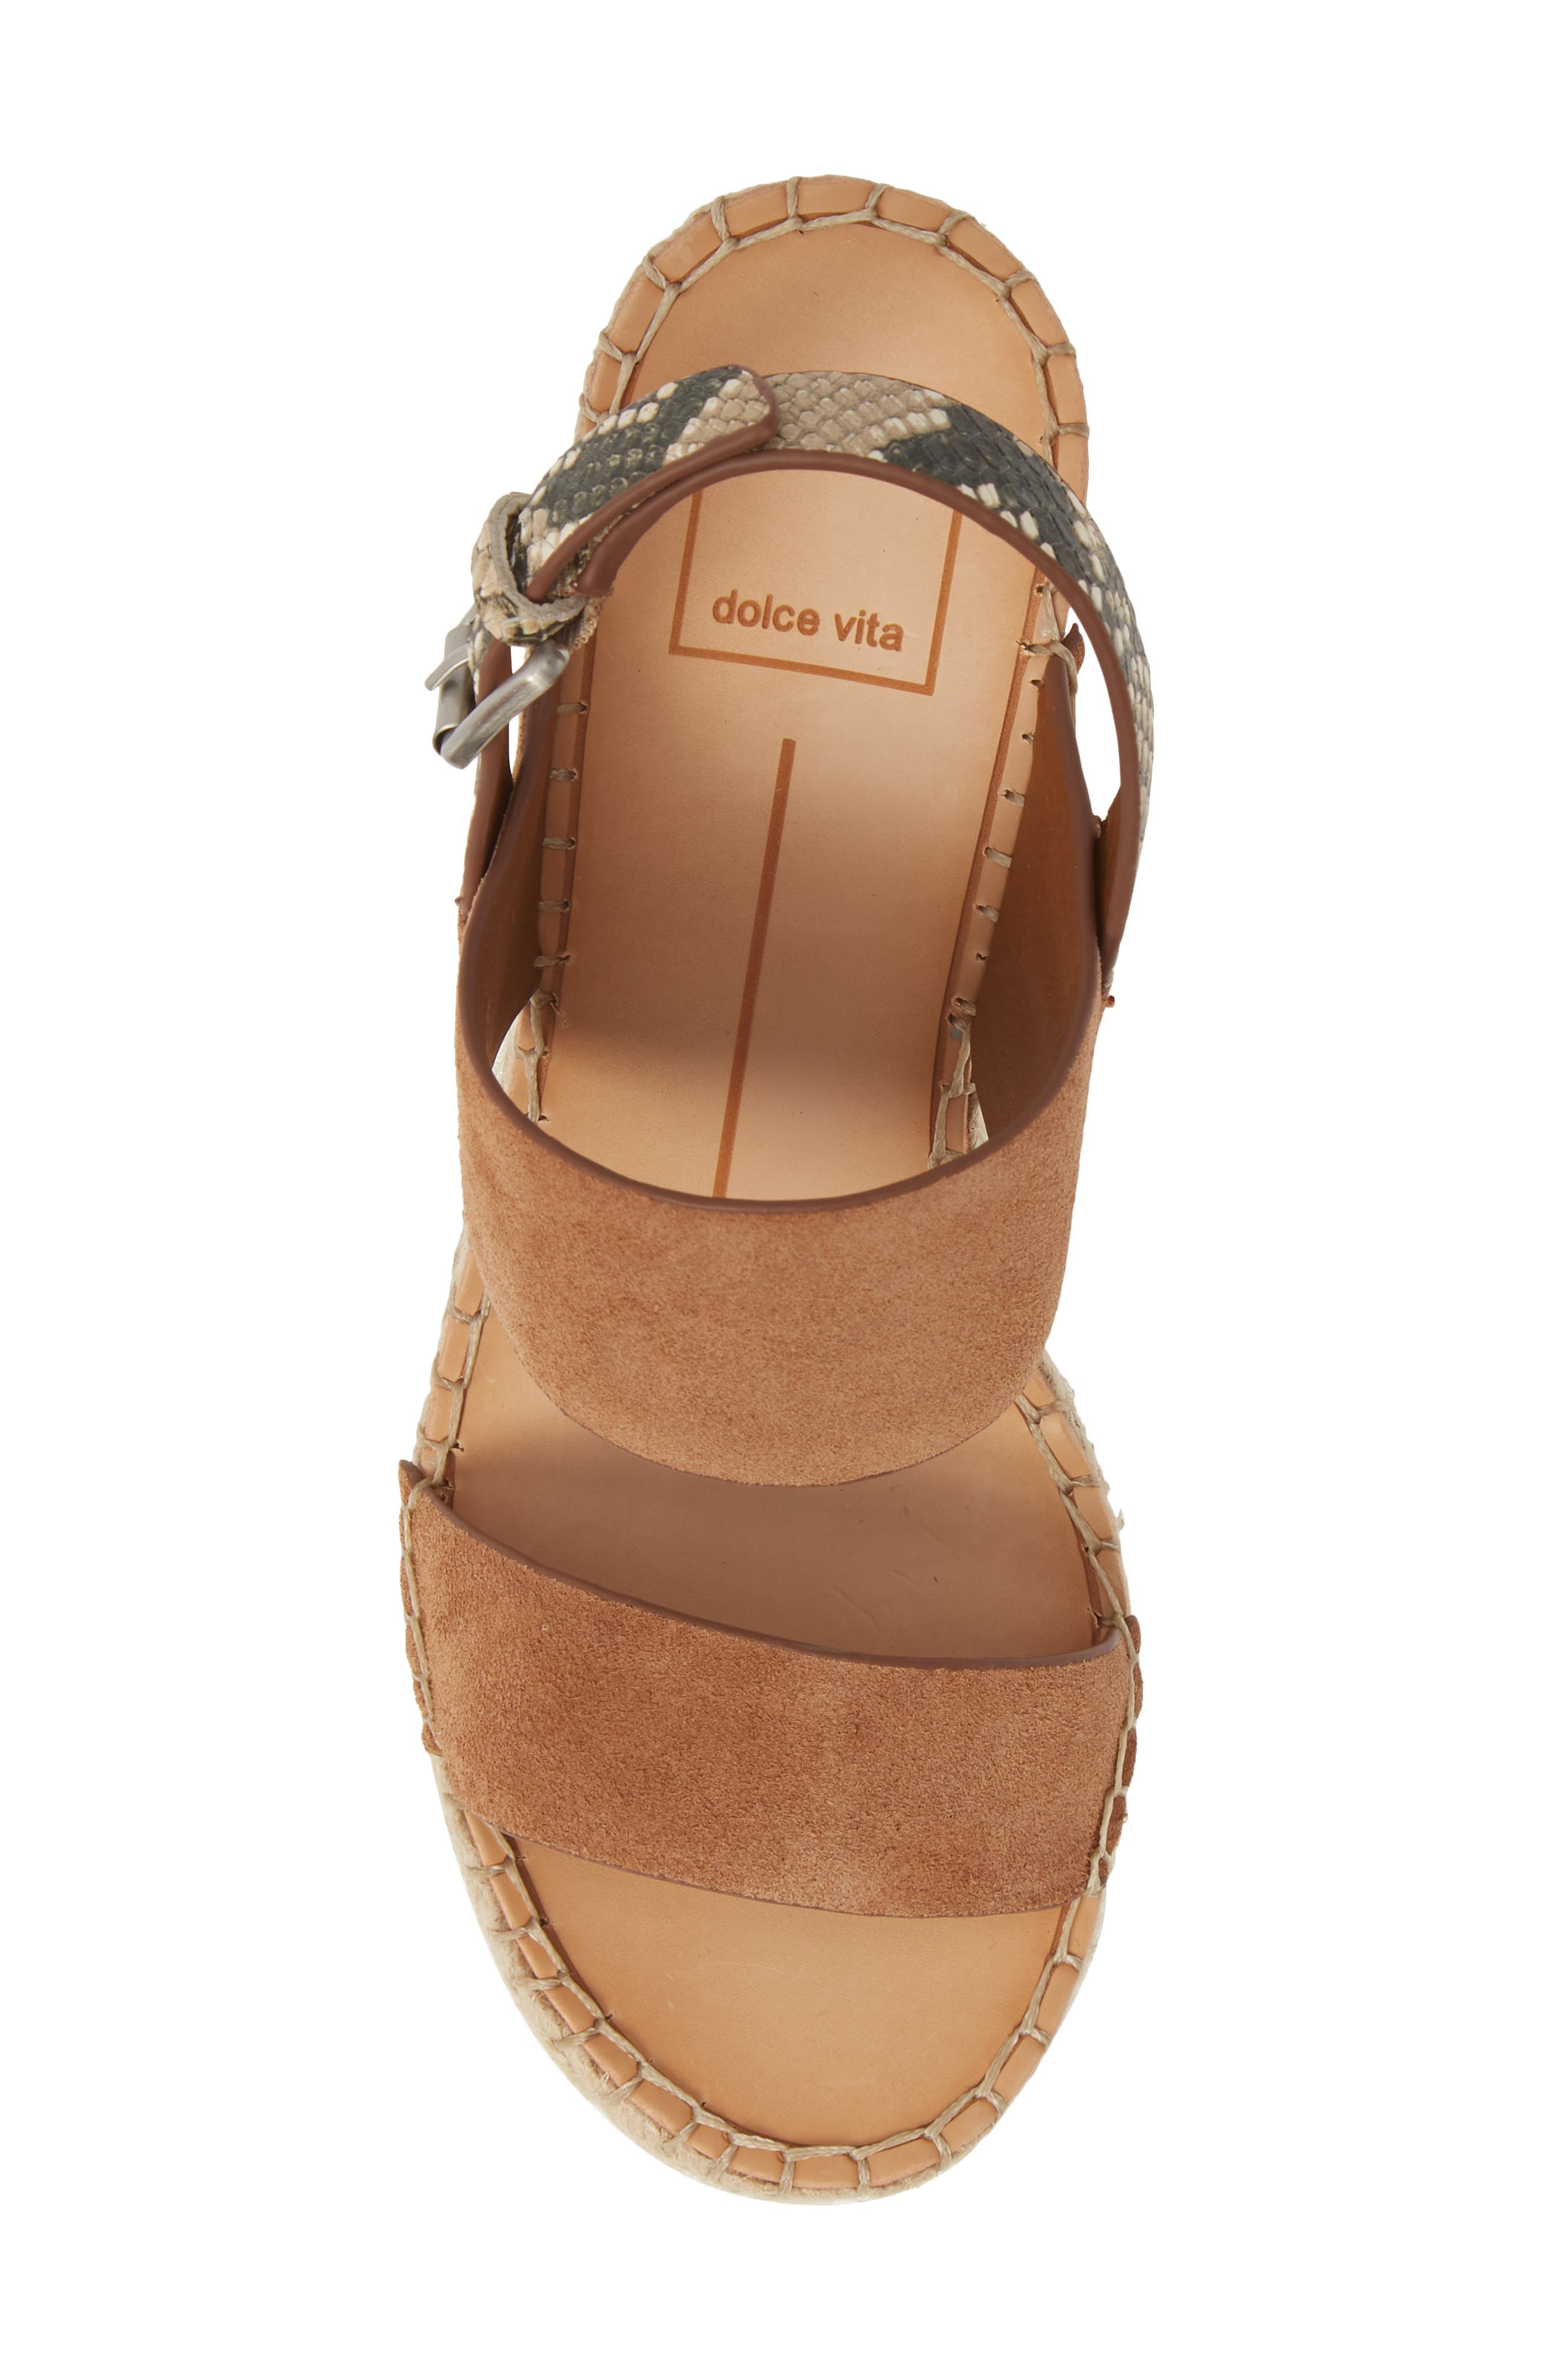 DOLCE VITA, Spiro Platform Wedge Sandal, Alternate thumbnail 5, color, BROWN SUEDE